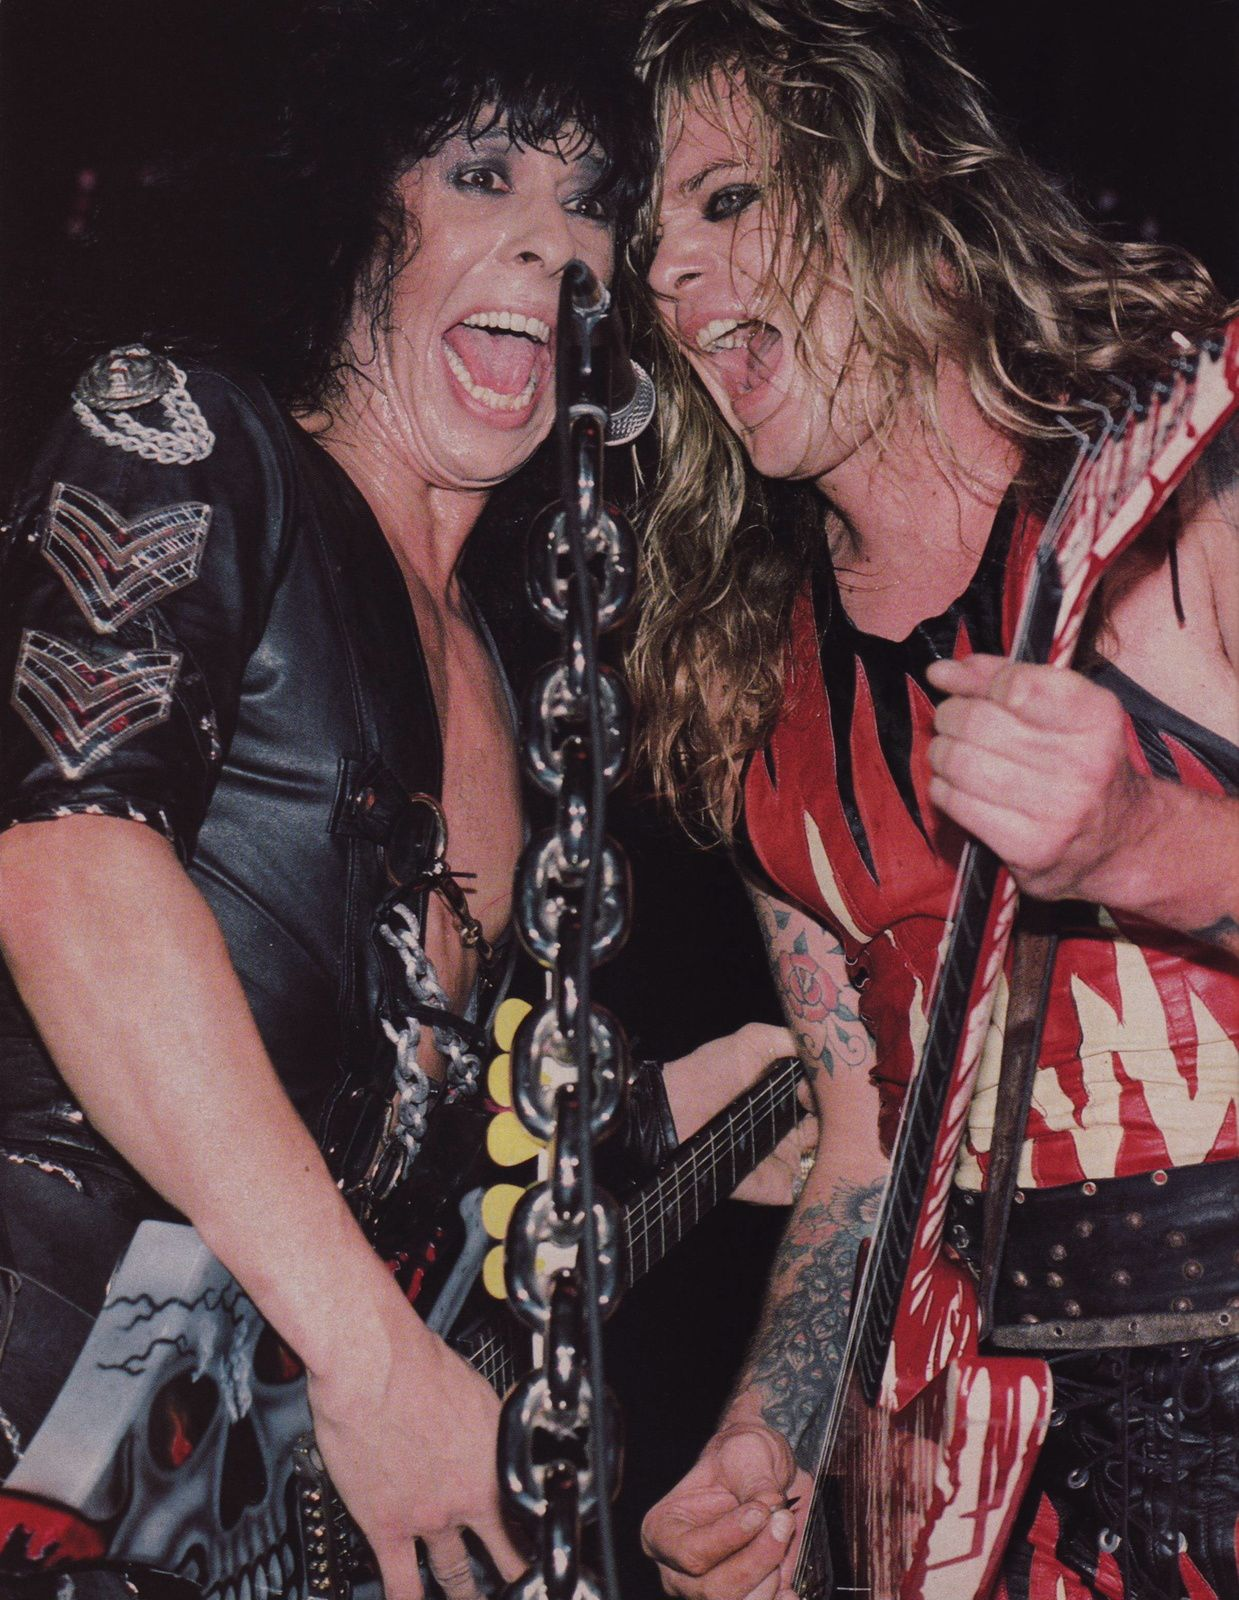 Randy Piper and Chris Holmes (W.A.S.P.)